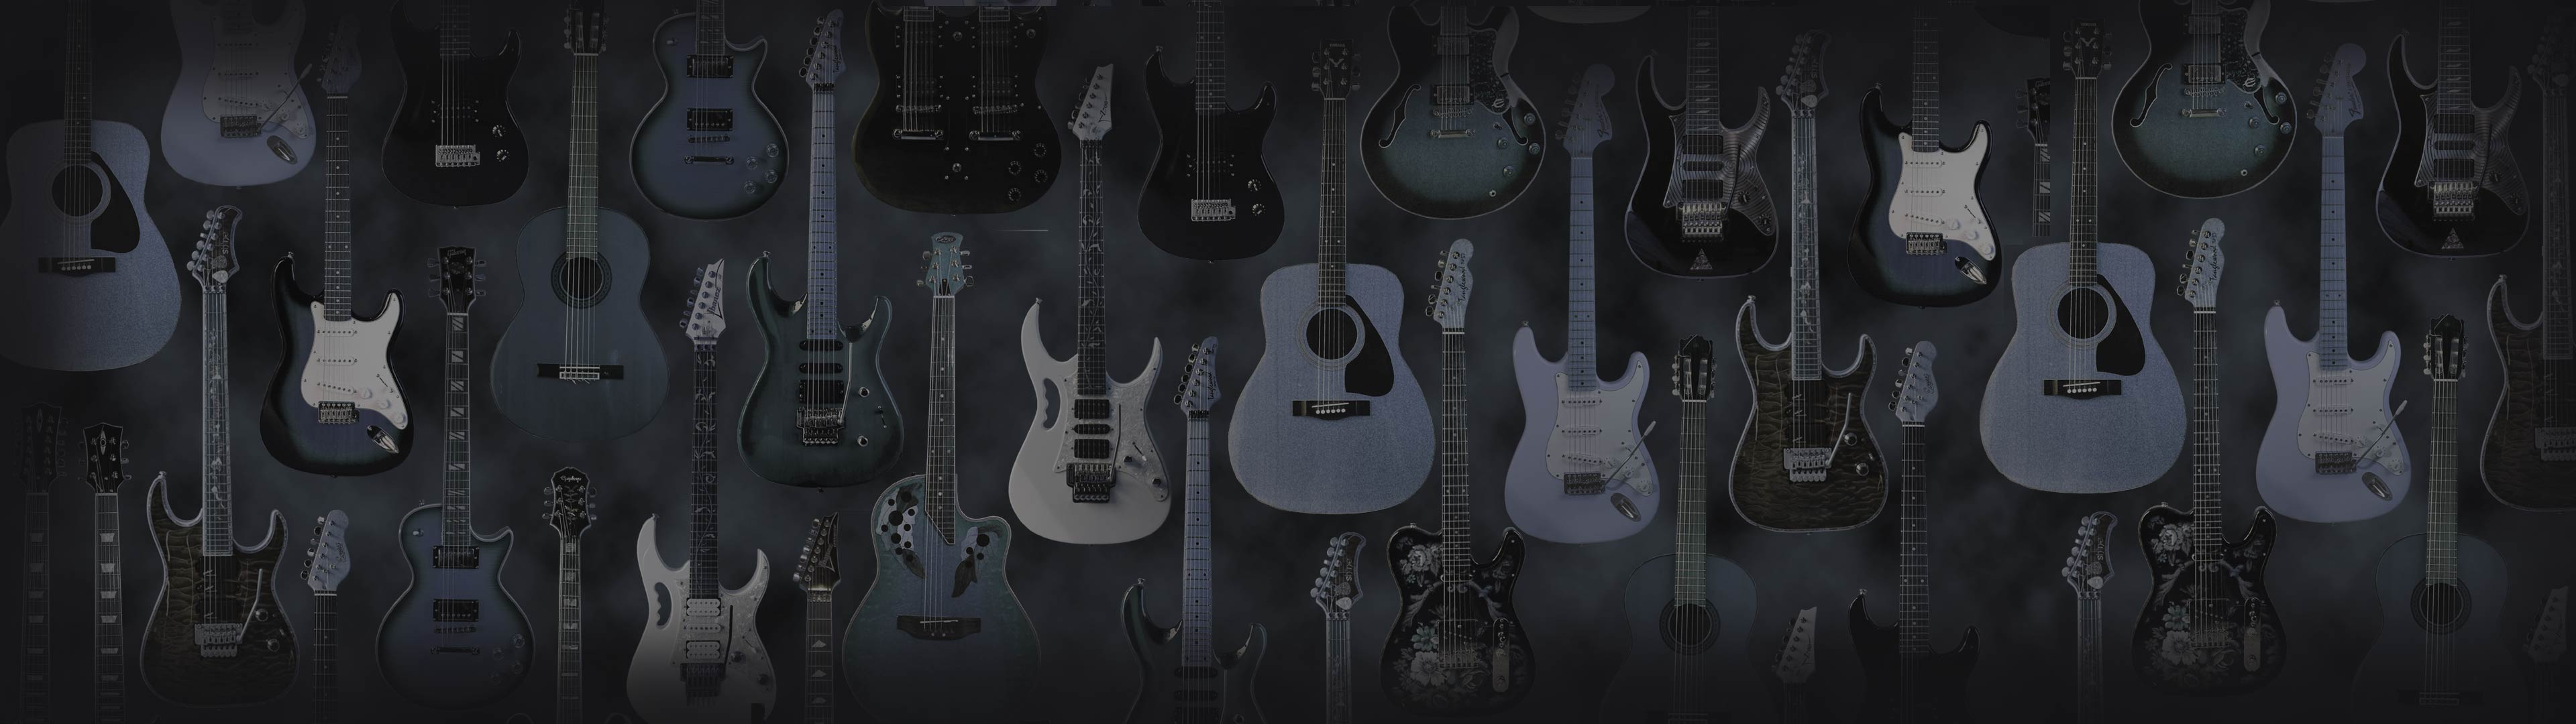 Good Wallpaper Music Dual Monitor - guitars-2-double-wide  Photograph_511434.jpg